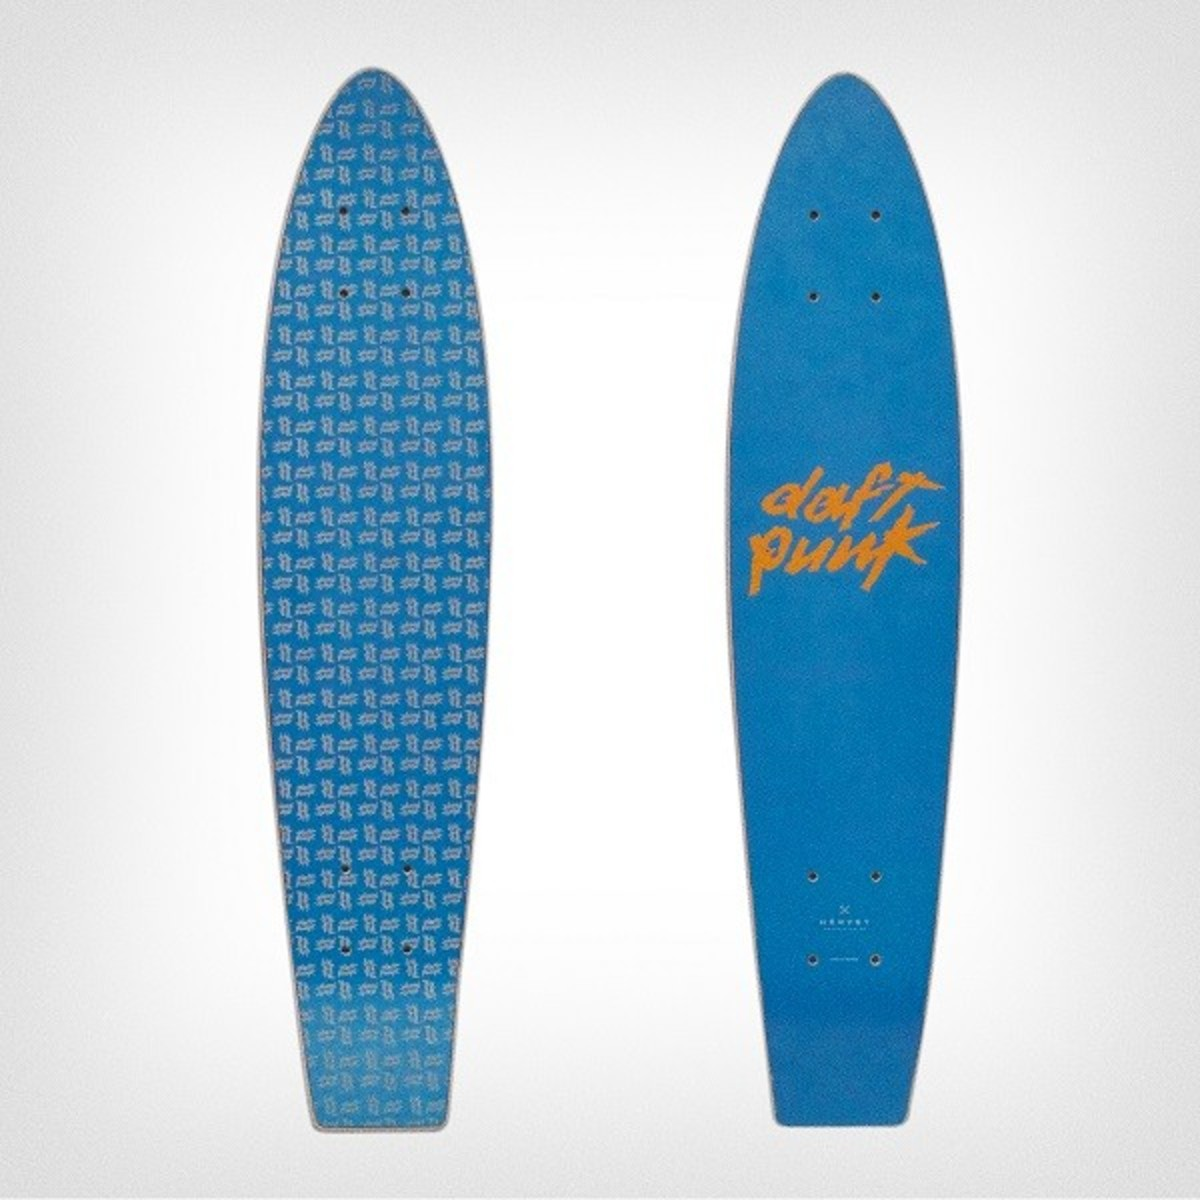 Daft Punk Releases Limited Edition Skate Decks